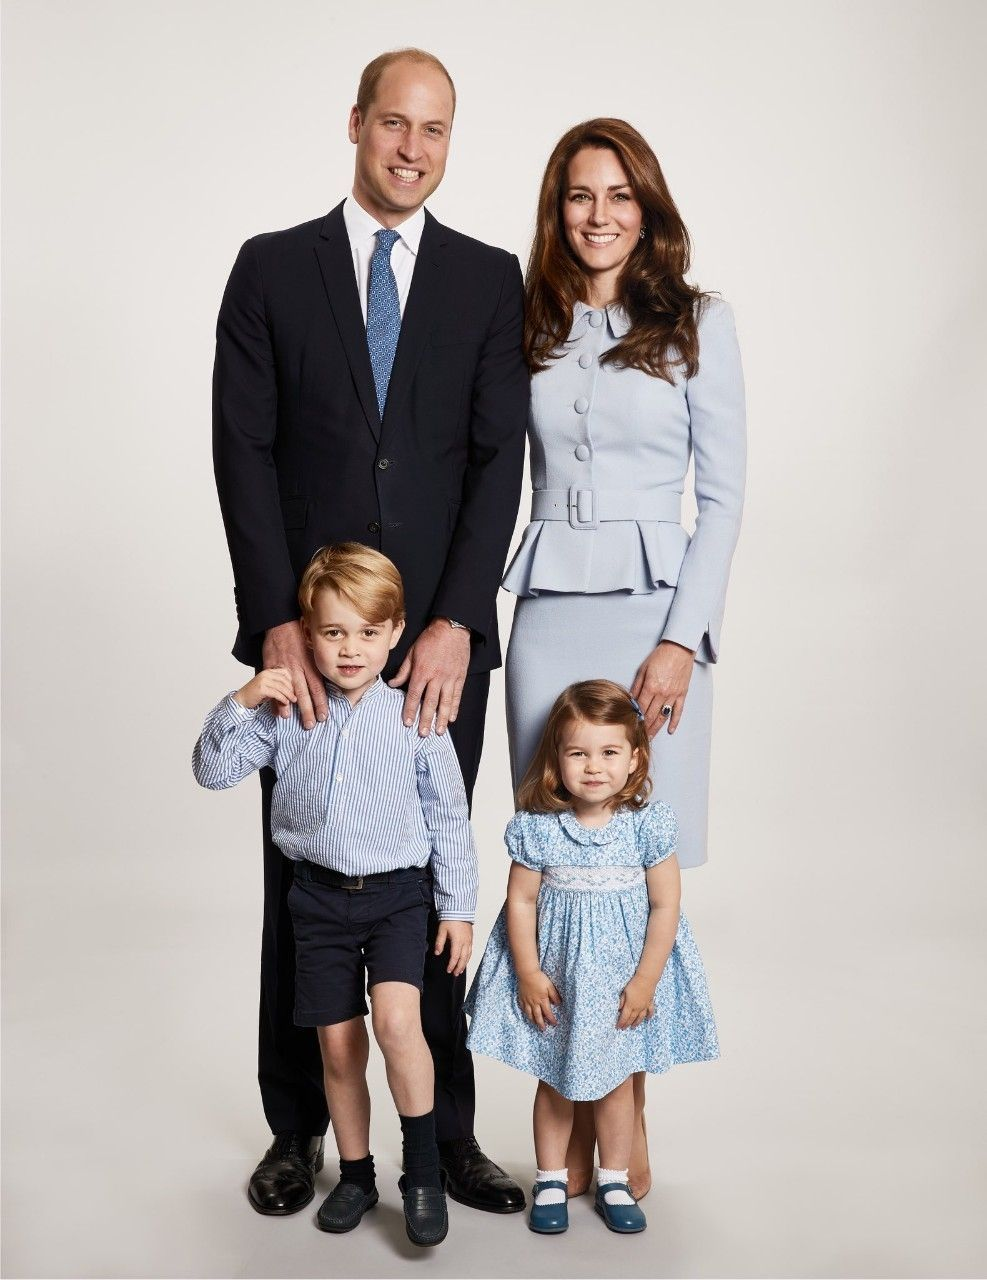 Prince William And Kate Middleton S Family Christmas Card Released Fox News Royal Family Christmas Kate Middleton Family Royal Family Portrait